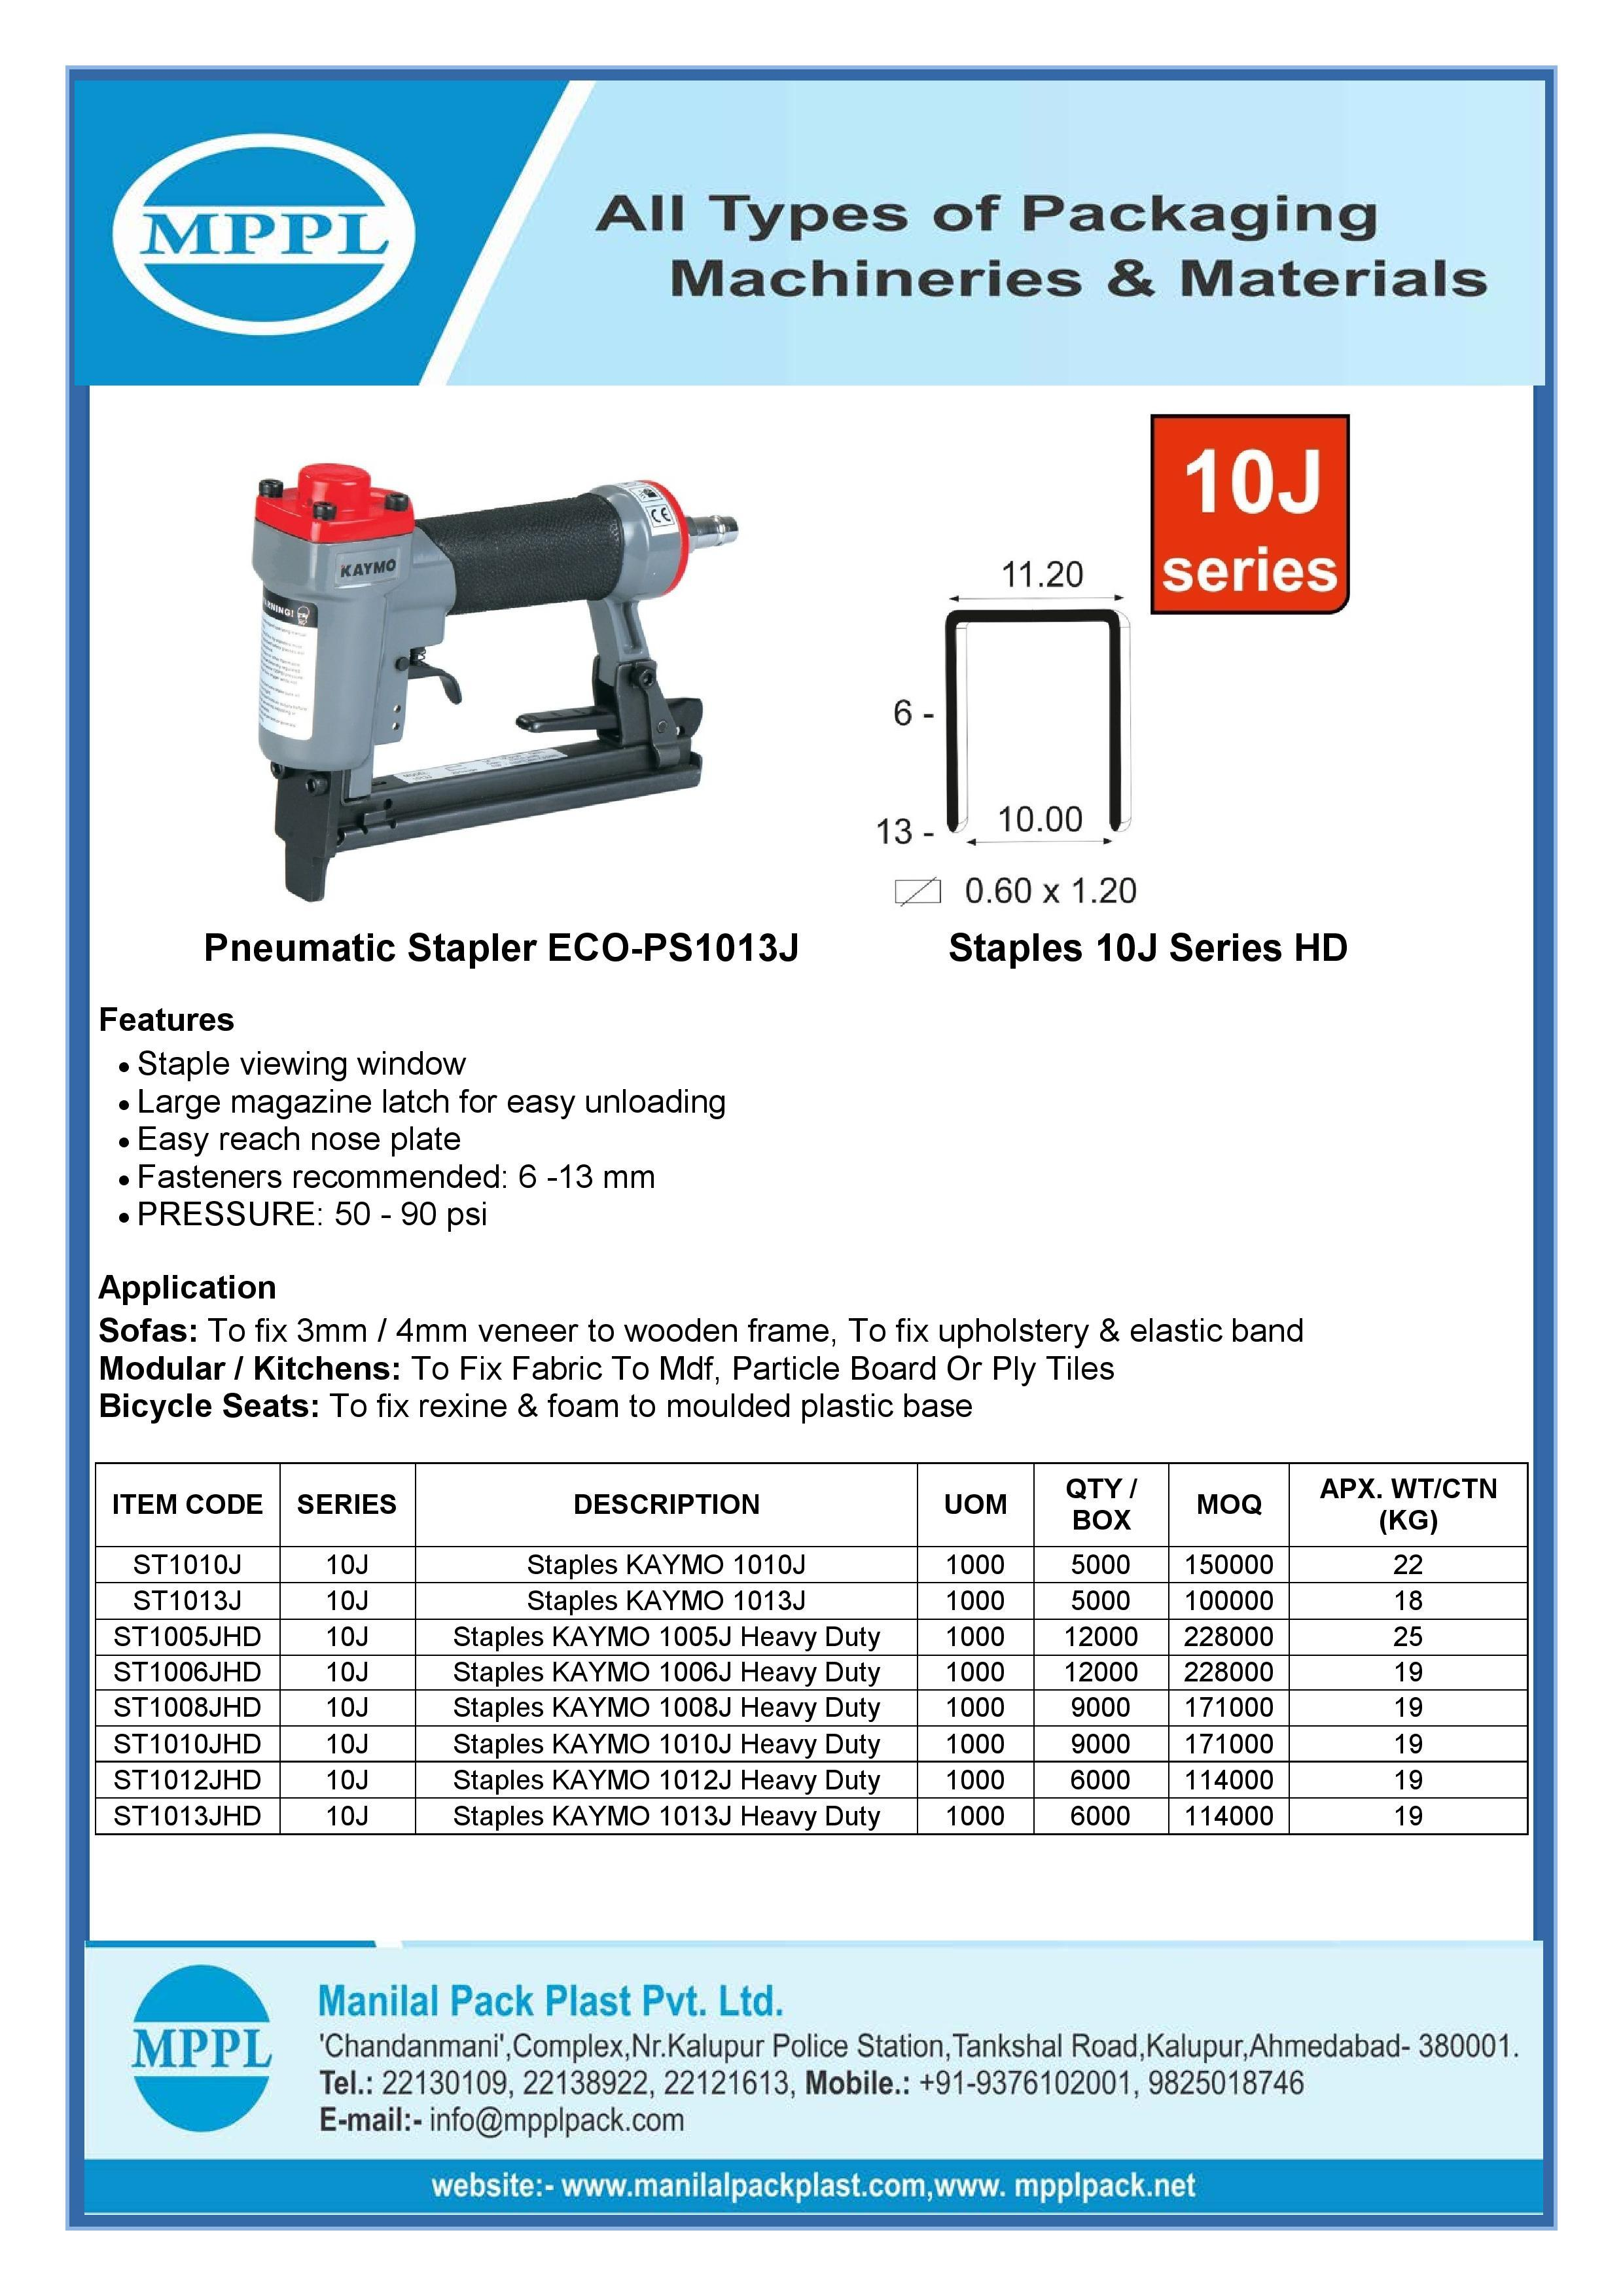 Pneumatic Stapler ECO-PS1013J